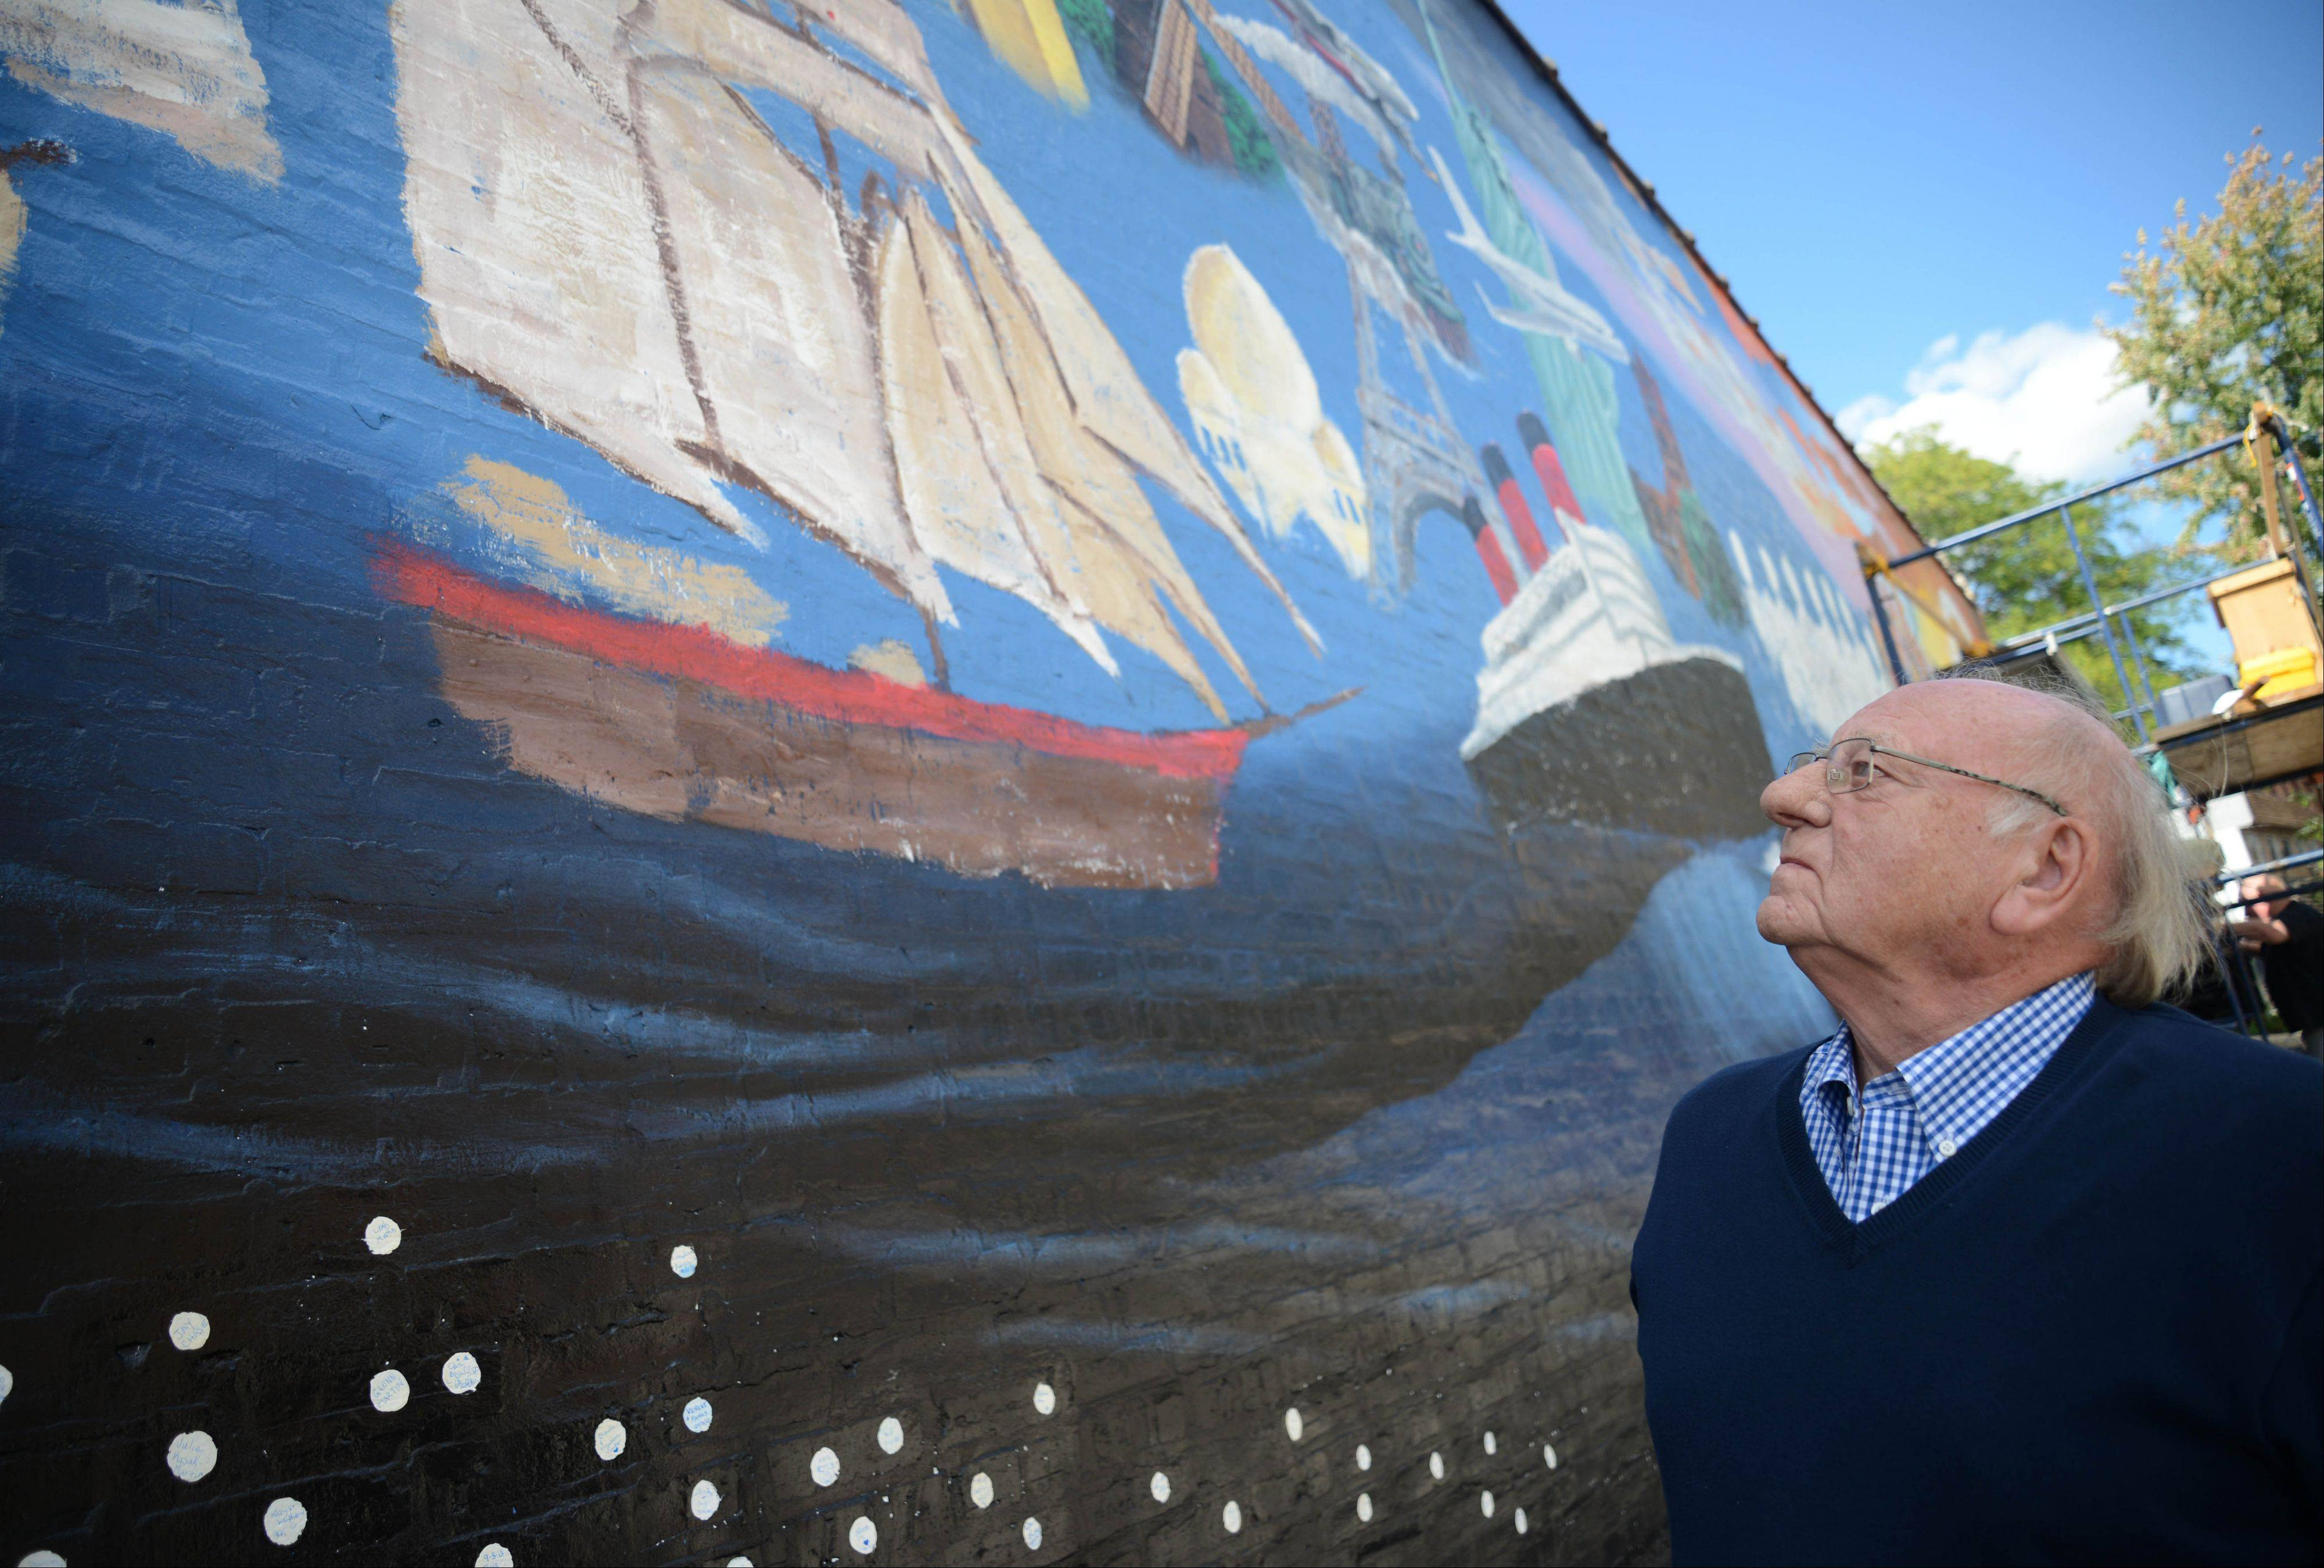 Henry Schnabel of Wheaton examines the new mural, �Pearls of the Universe� unveiled in the village Sunday. The 70-foot mural, created by artist R.J. Ogren celebrates diversity in Wheaton. It was inspired by a poem written by Mehret Asgedom, who came to Wheaton as an Ethiopian refugee when she was a child.